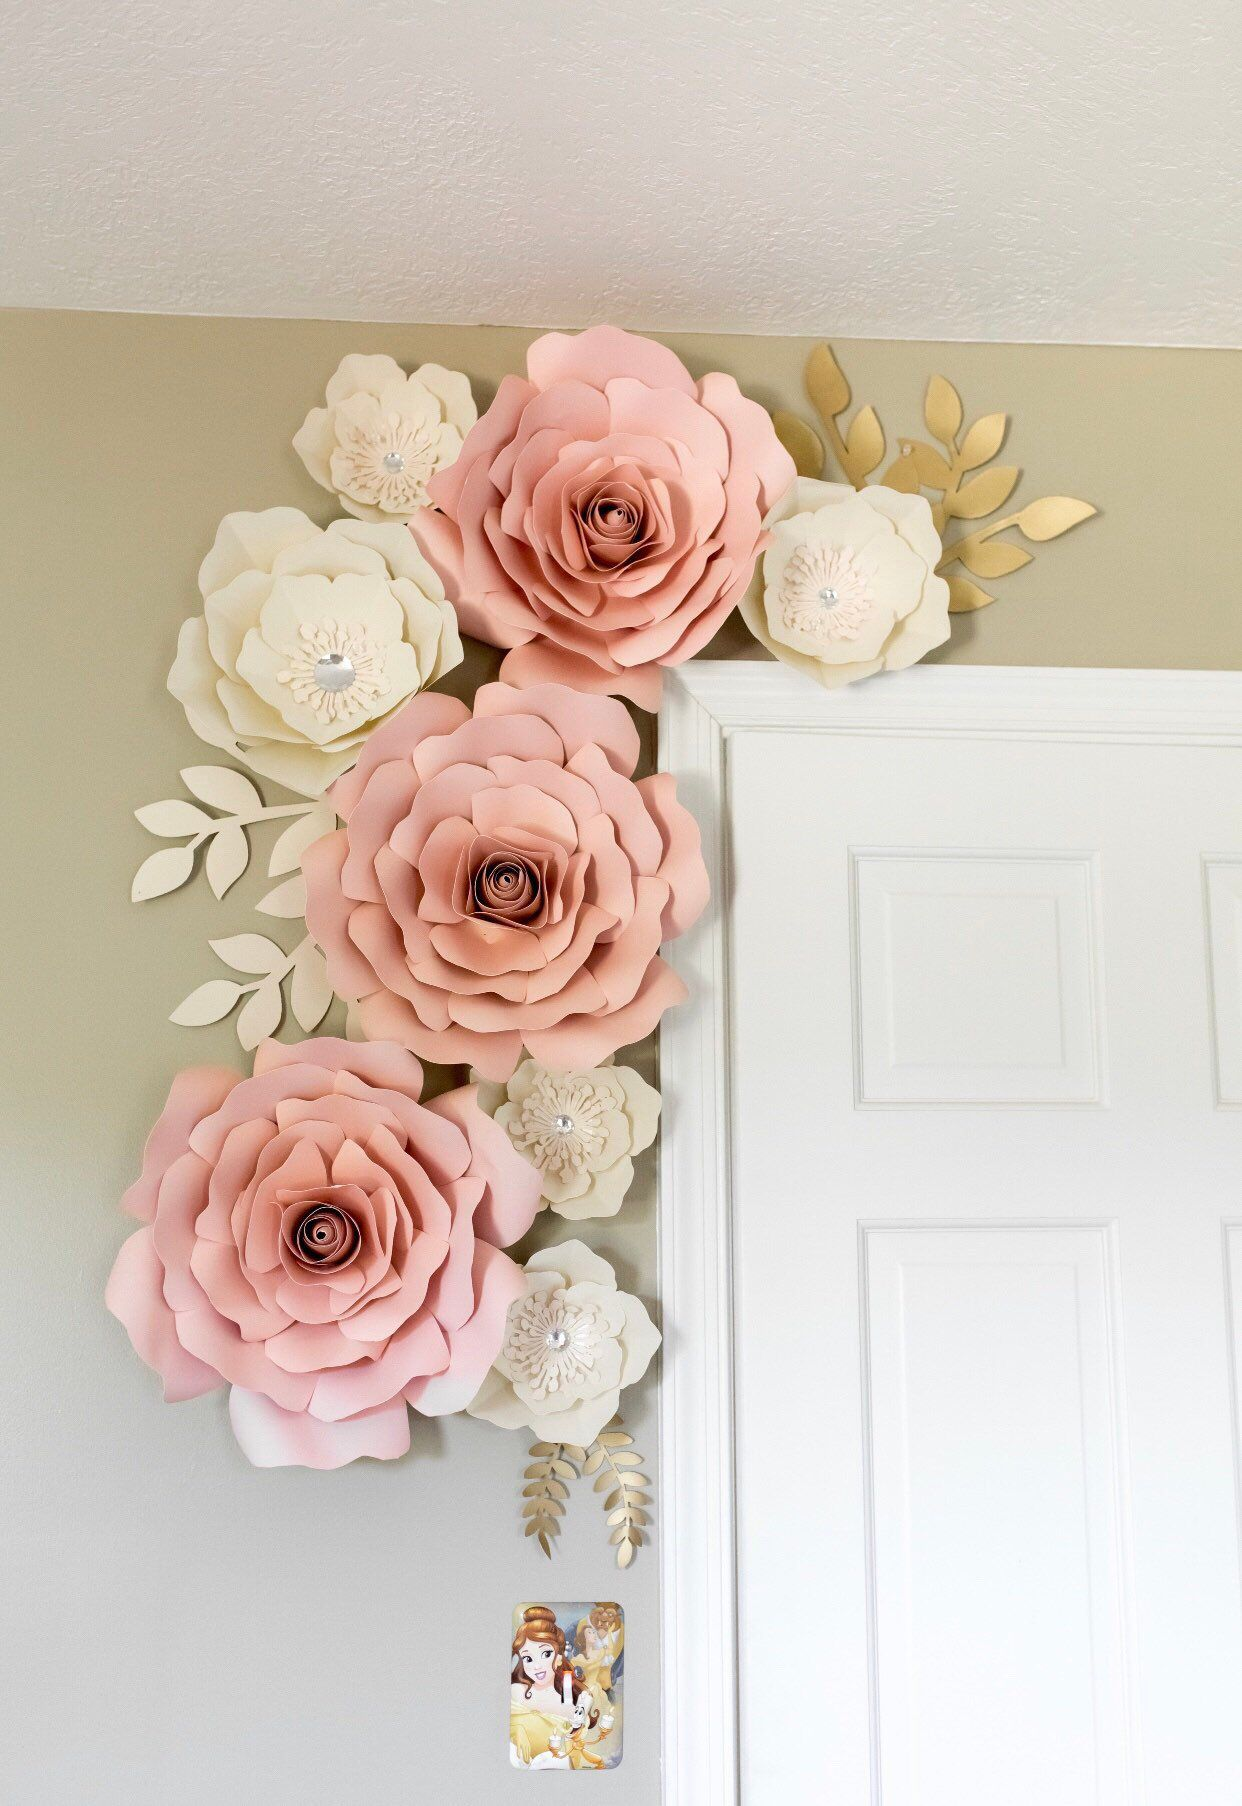 Blush and white paper flowers | paper flower wall decor | nursery wall decor | paper flower backdrop | paper flower photo backdrop party #largepaperflowers